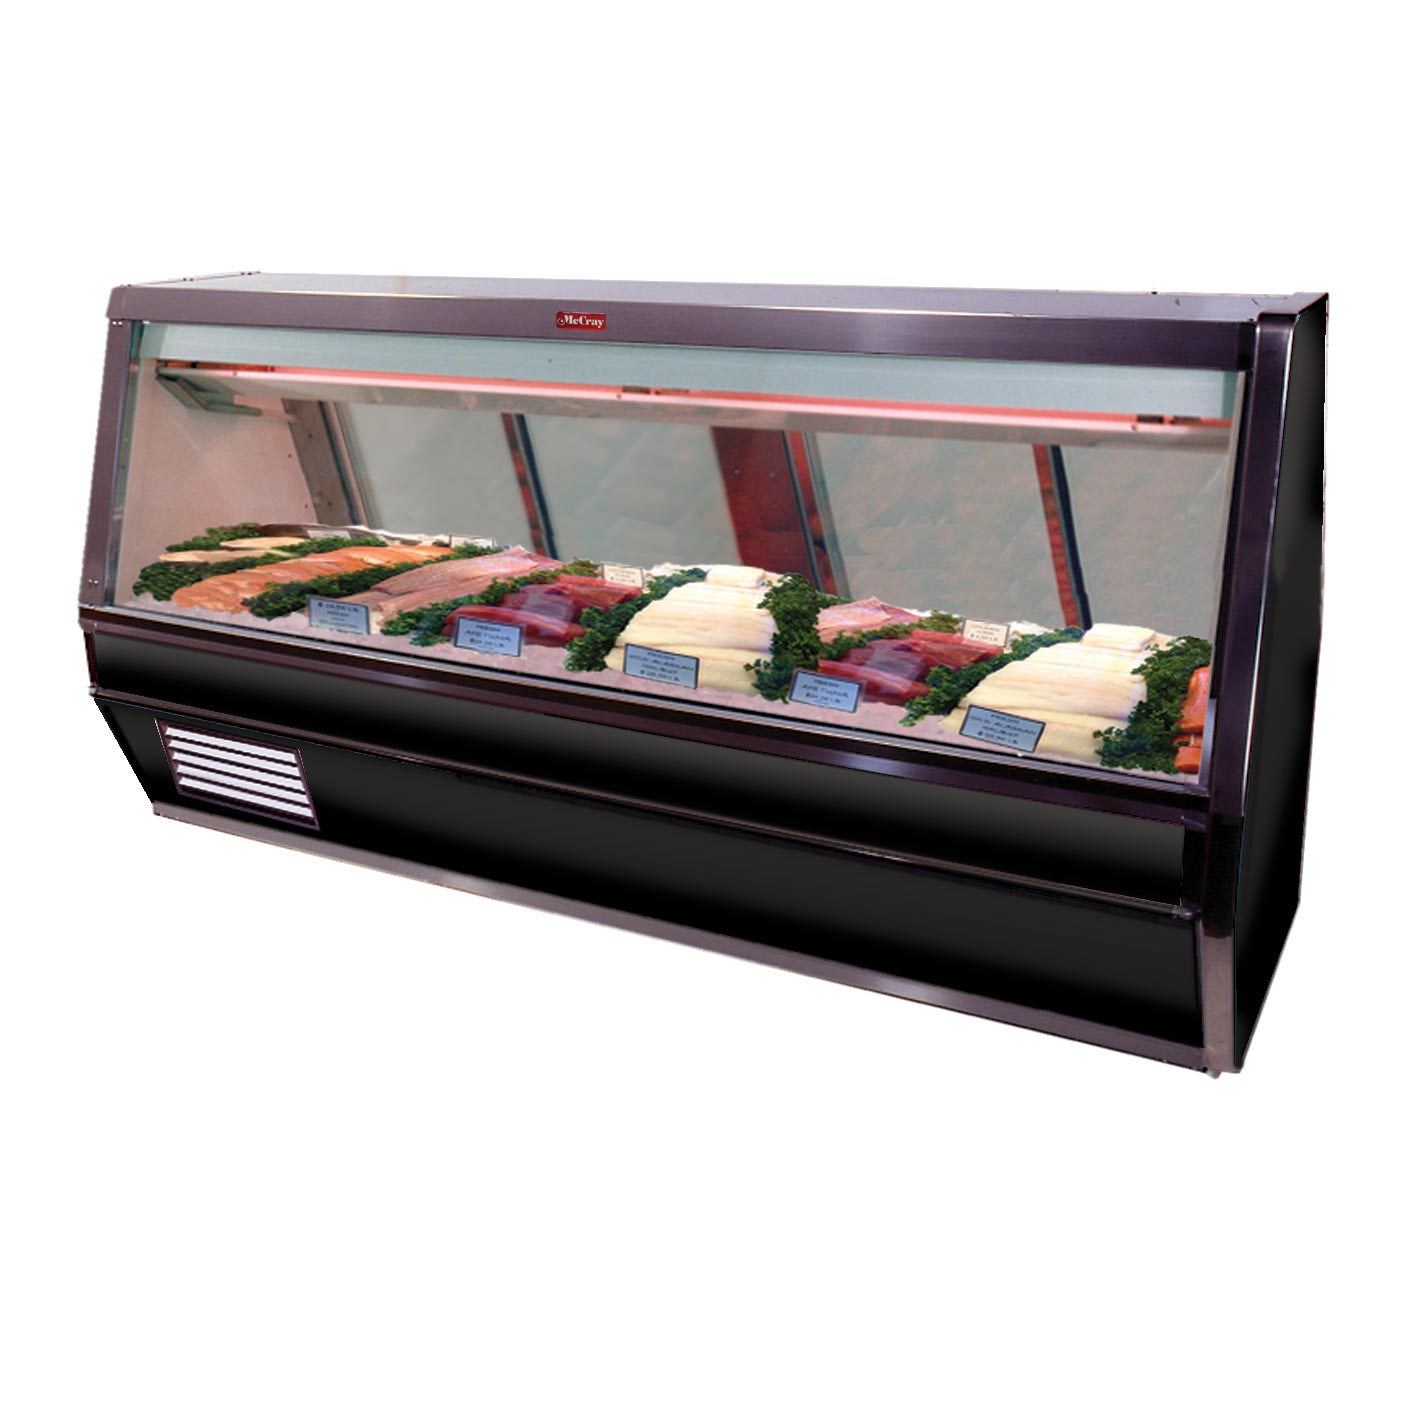 Howard-McCray R-CFS40E-4-BE-LED display case, deli seafood / poultry